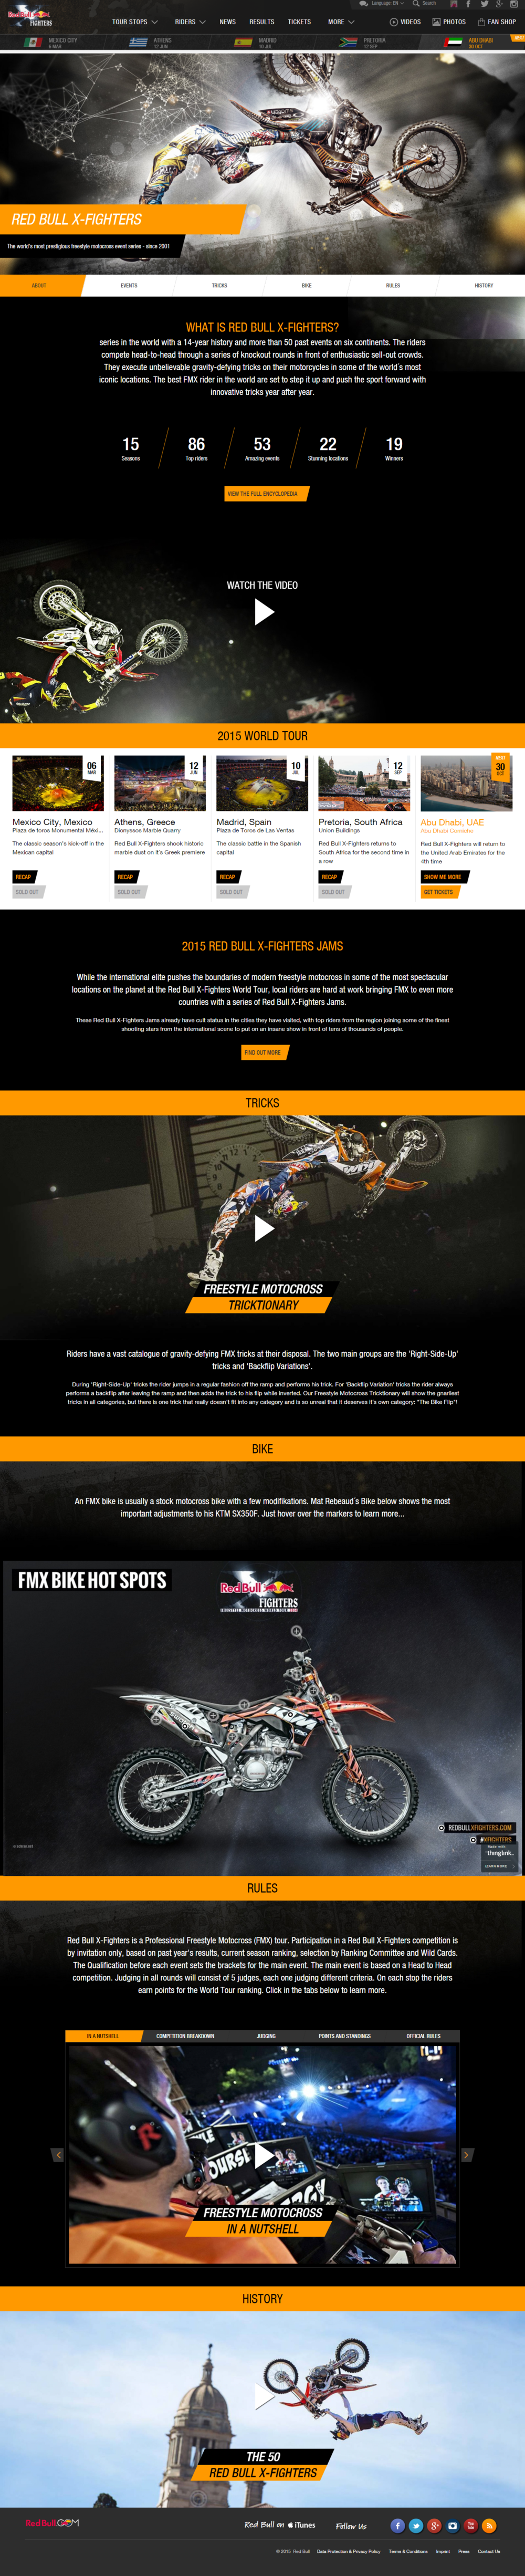 screencapture-www-redbullxfighters-com-en_INT-about-1443798323564.png